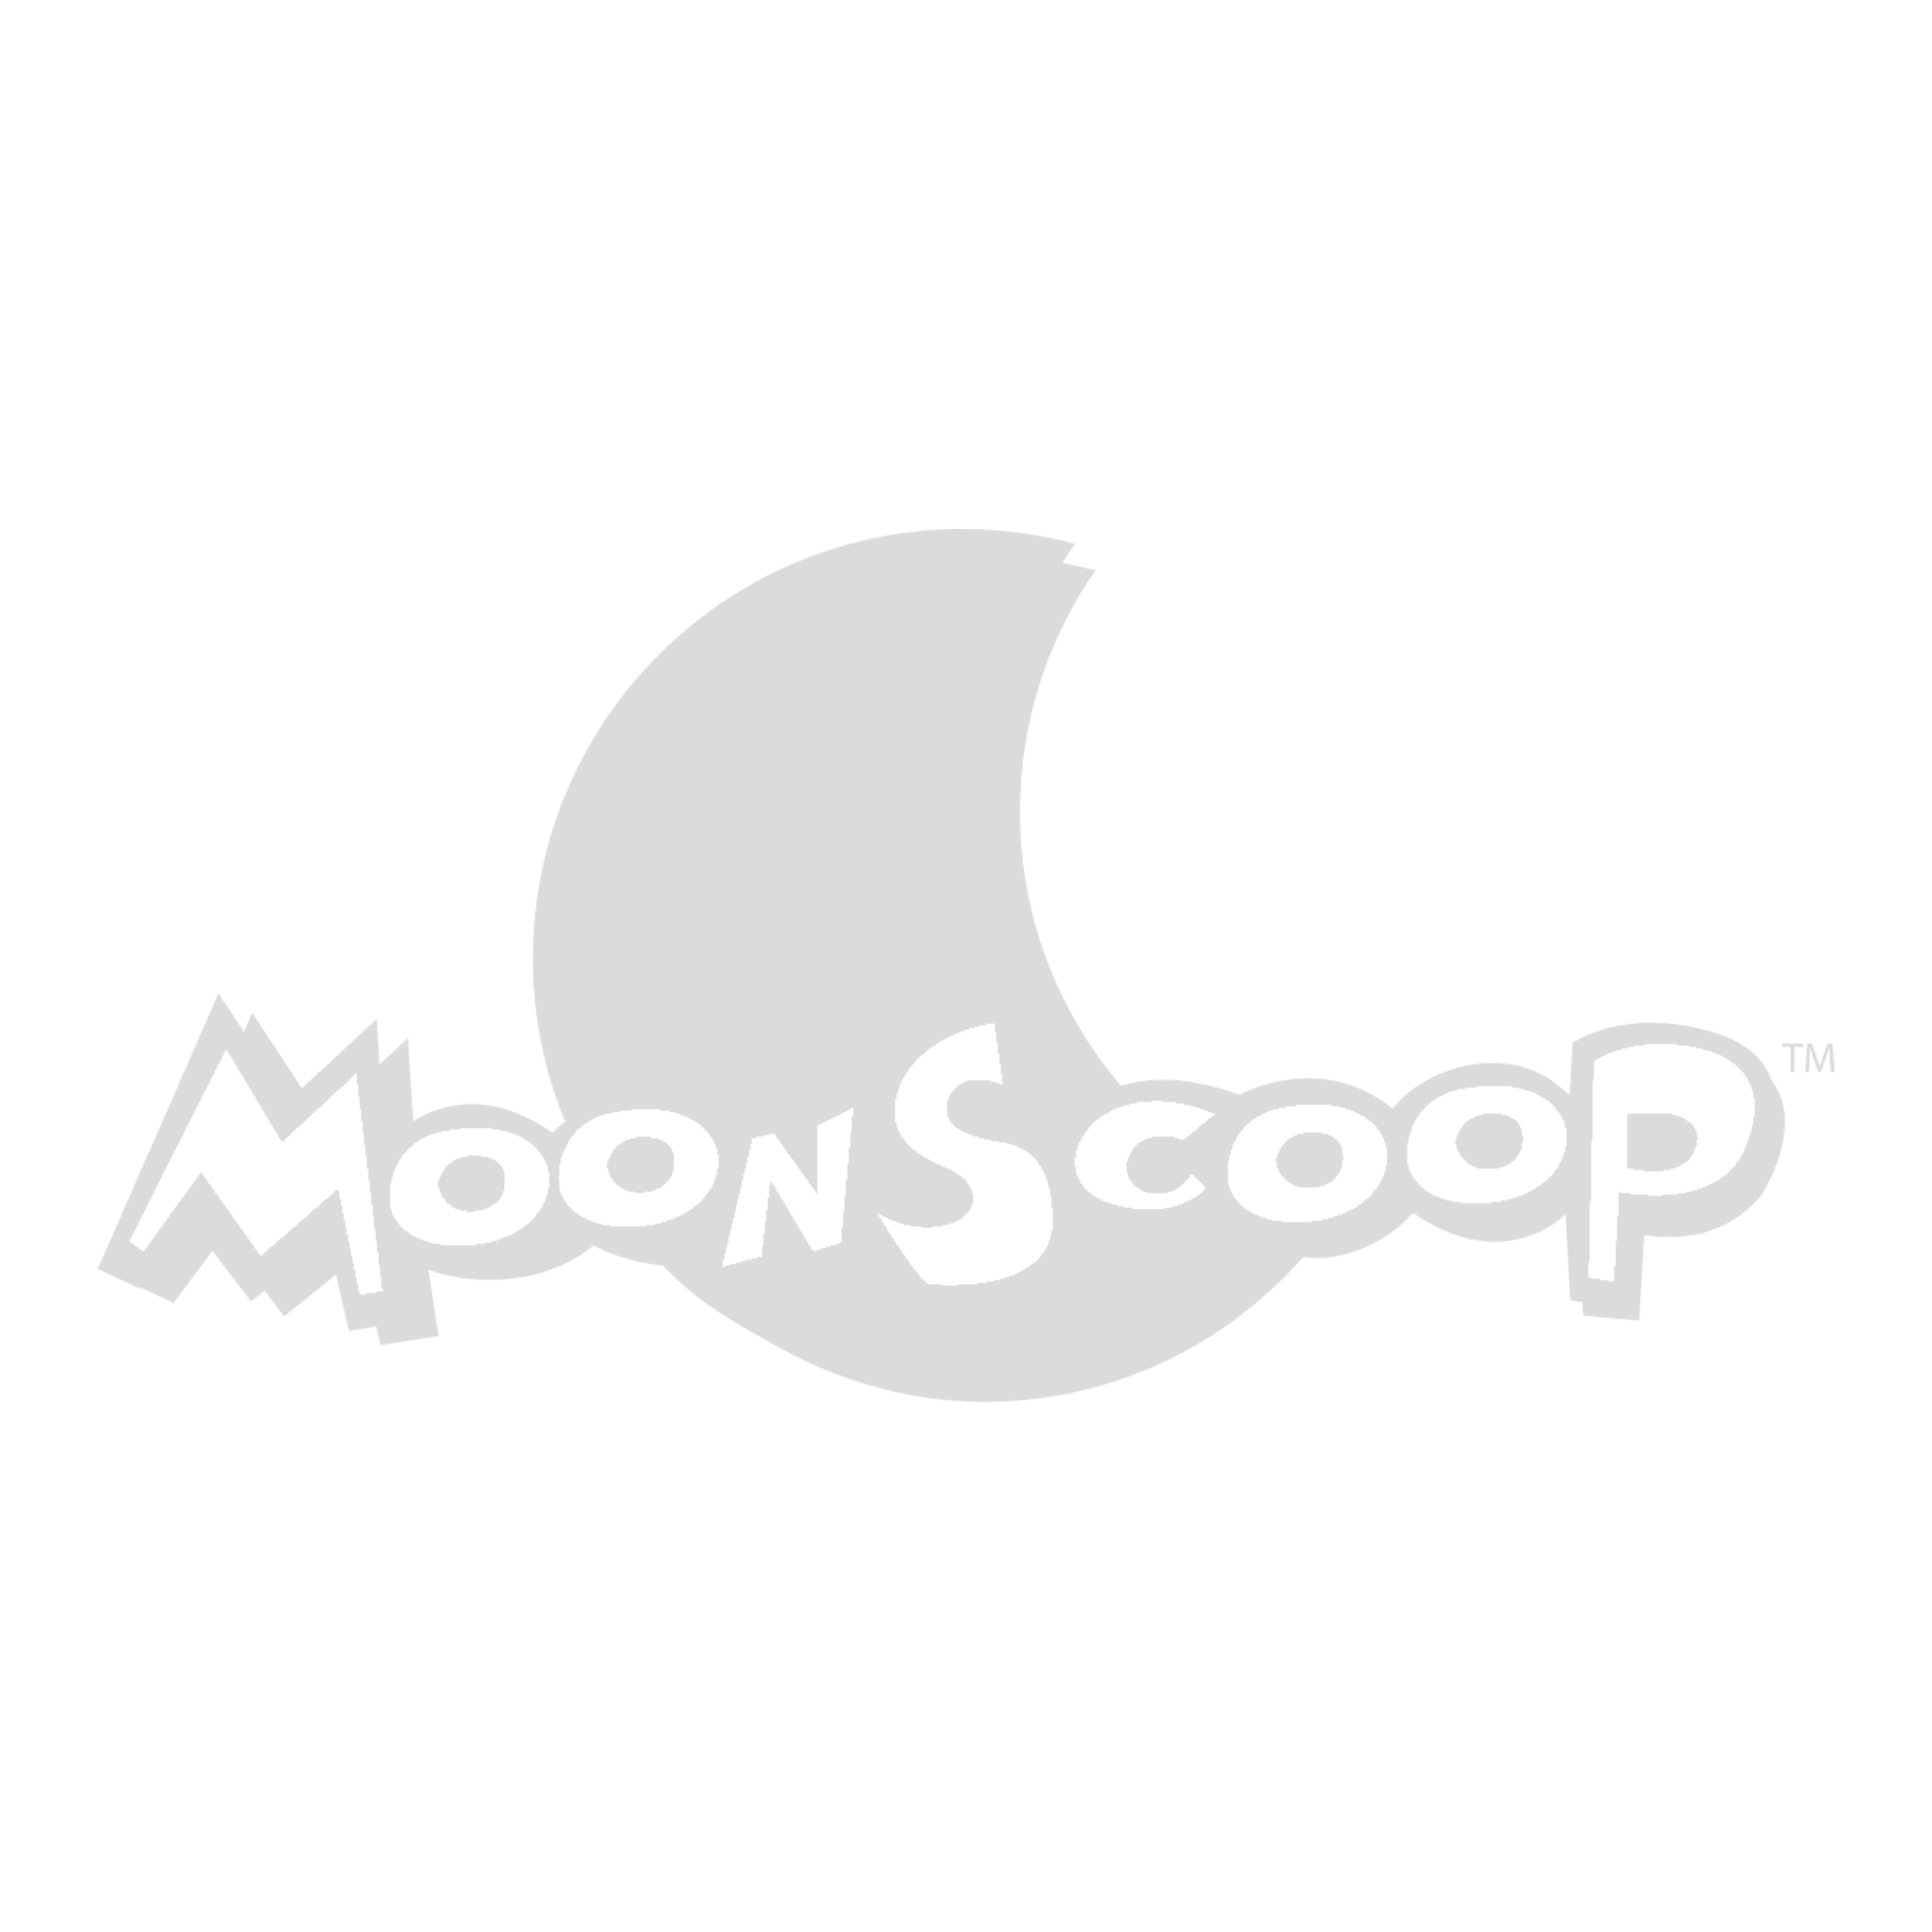 MOONSCOOPE_GRAY.png